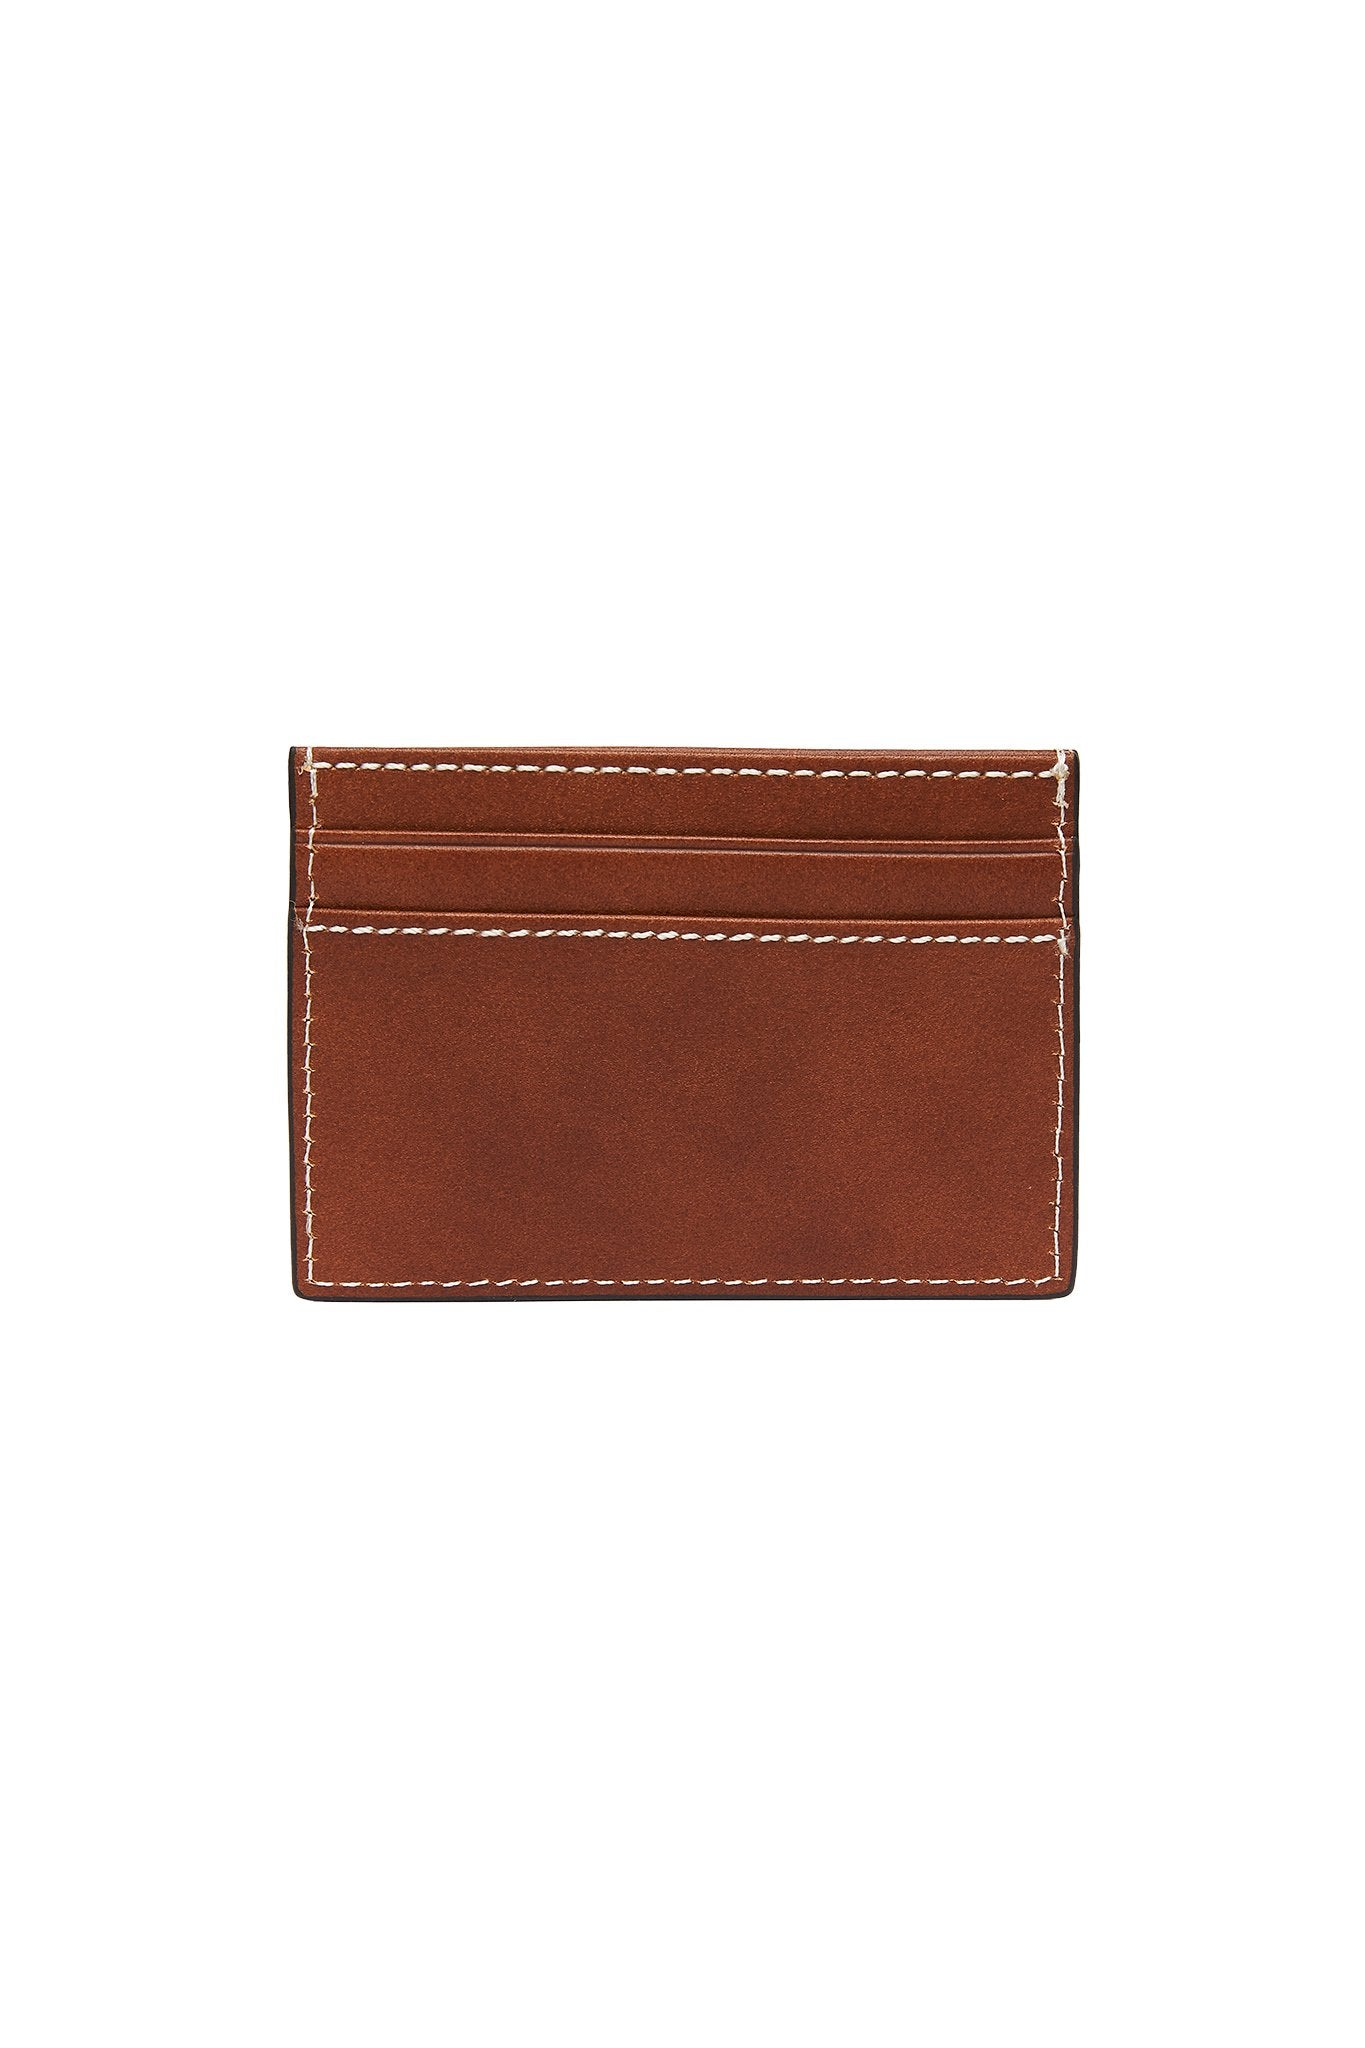 Acacia Card Holder Product View